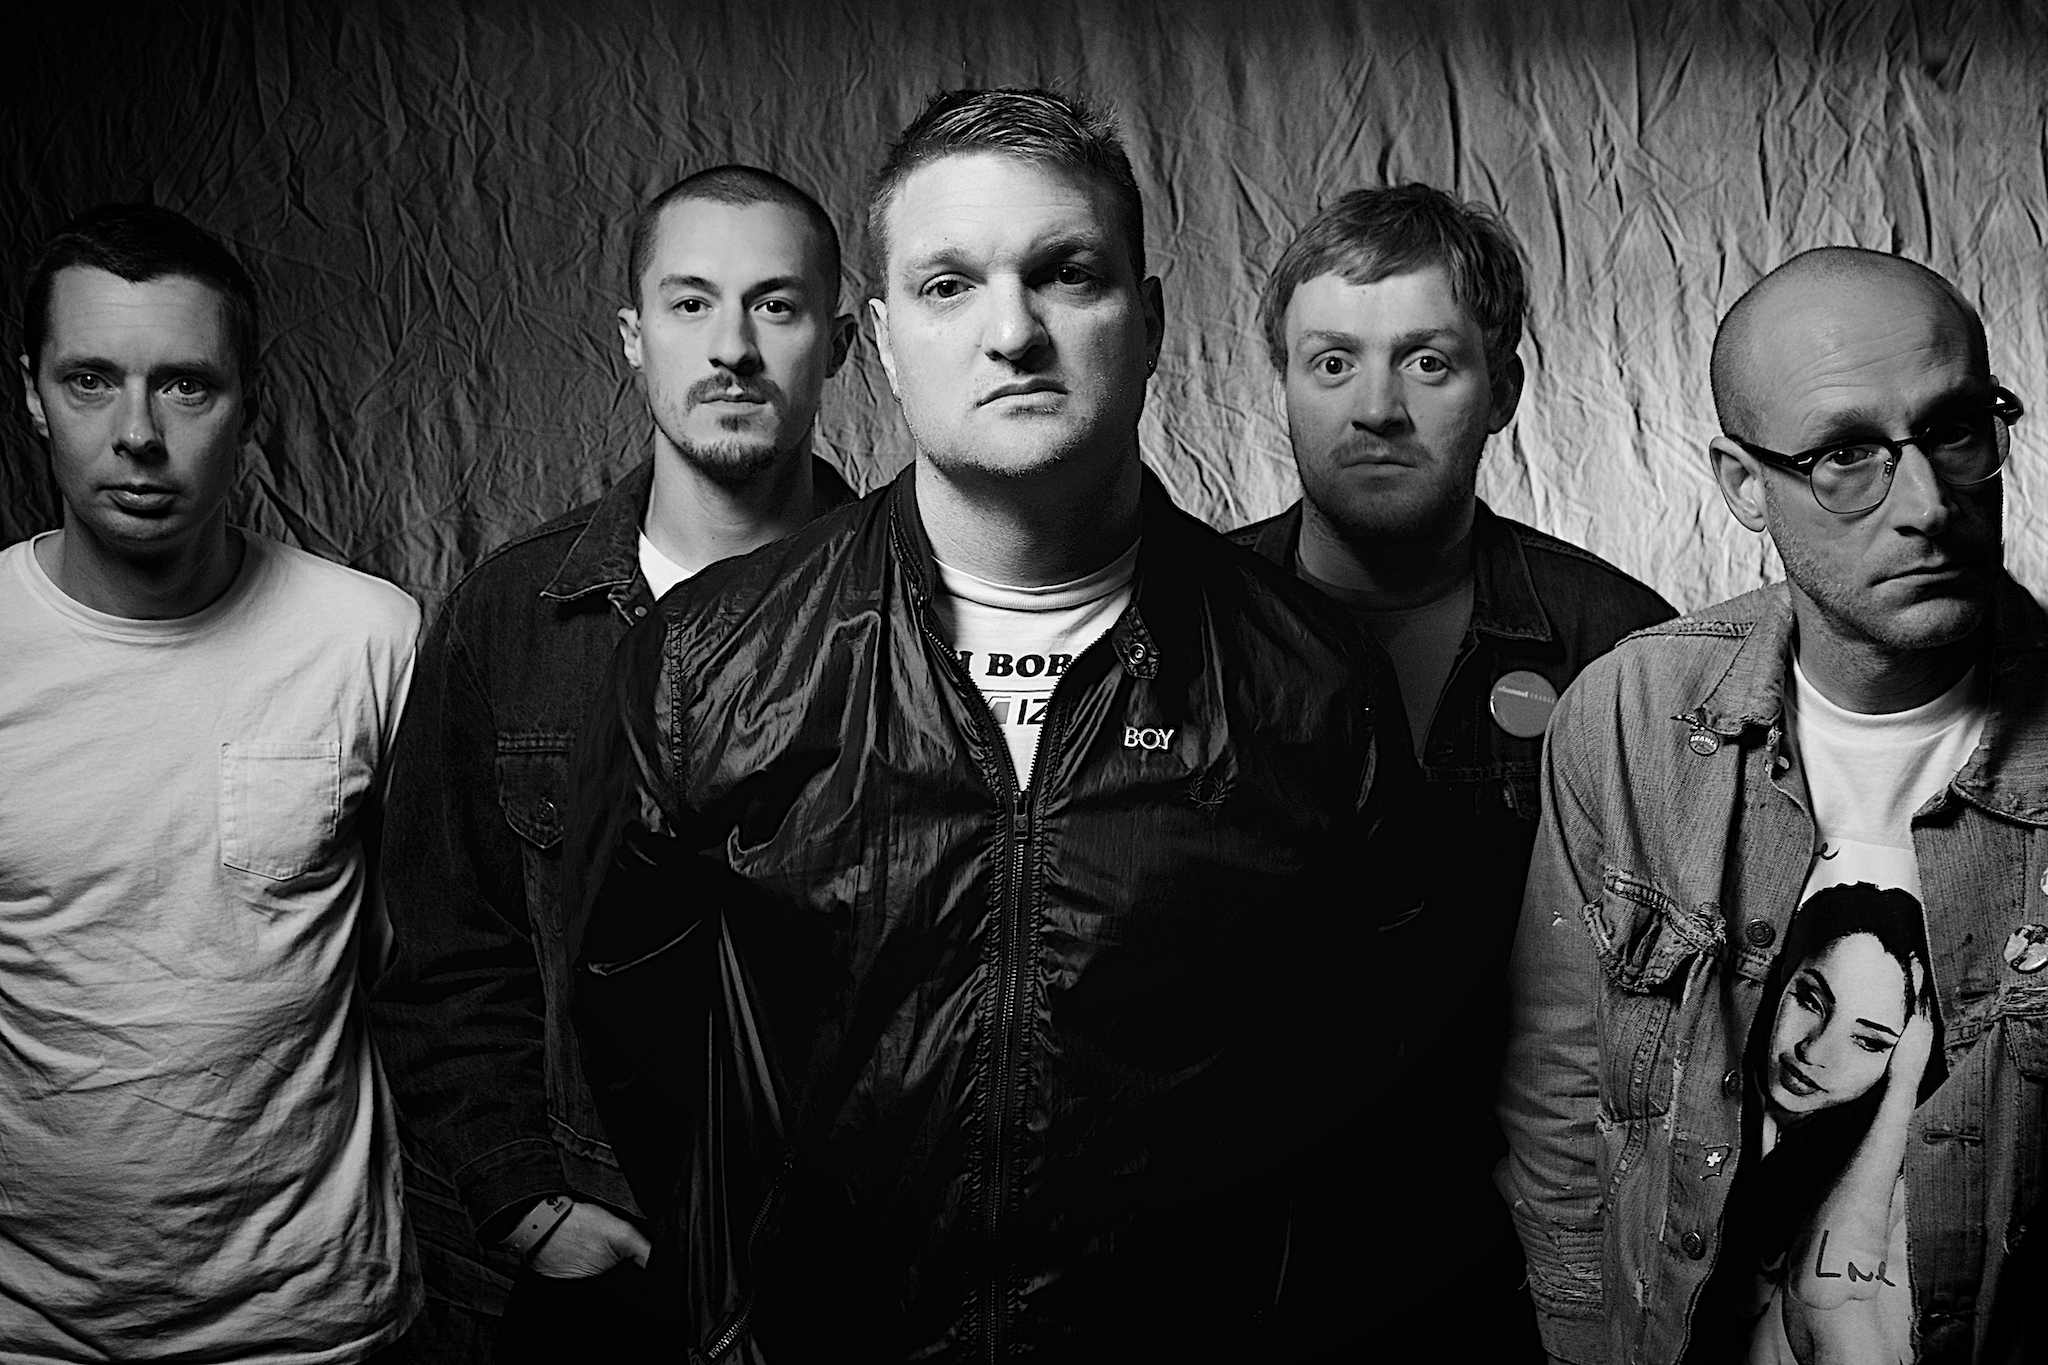 ColdWarKids3 - Version 2.jpg